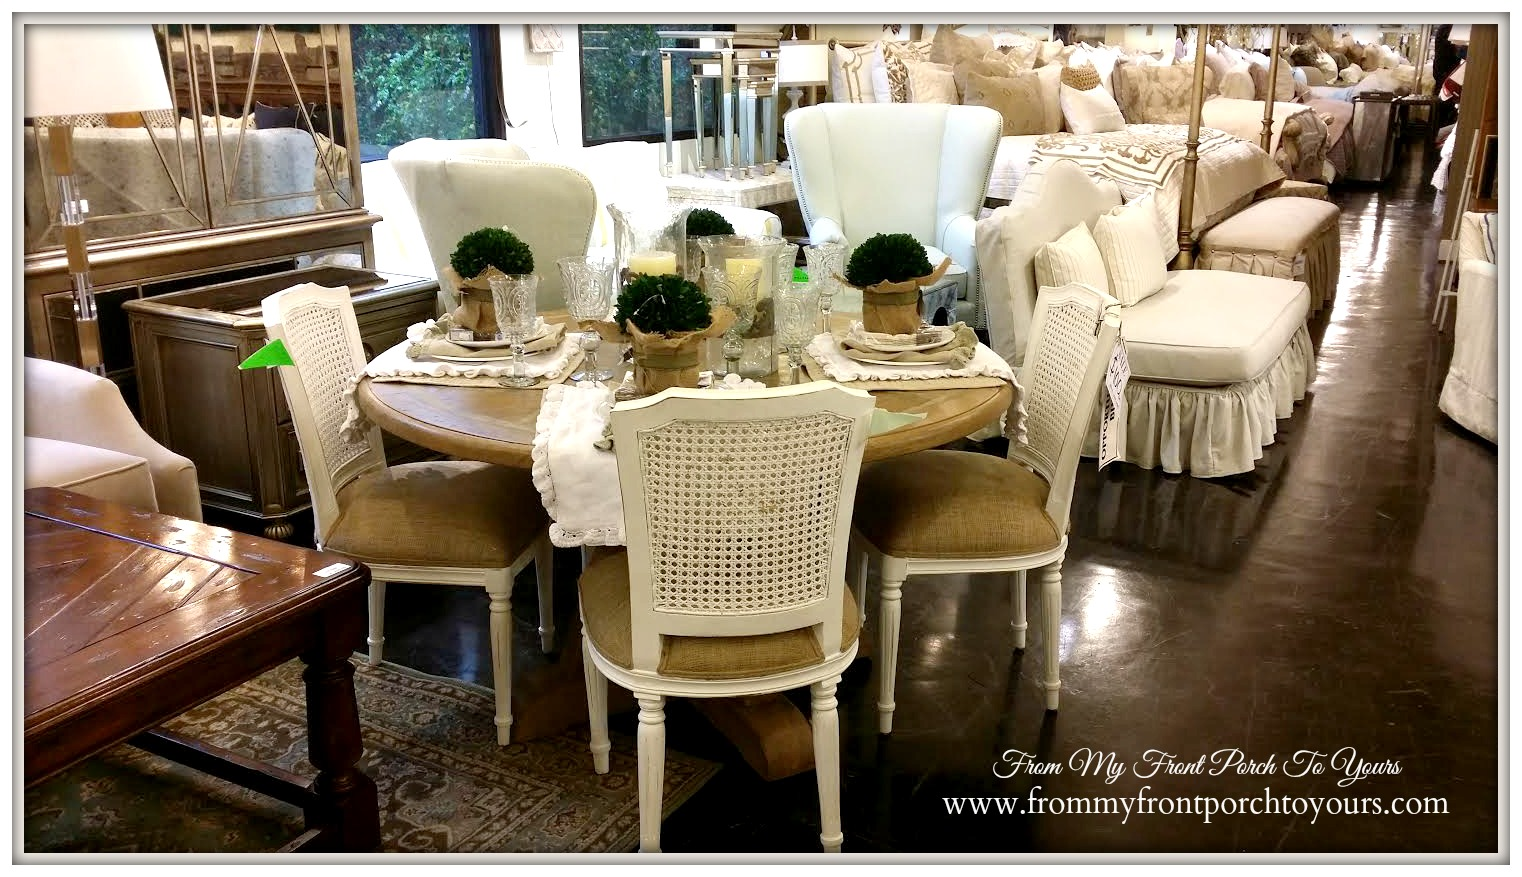 Laurie's Home Furnishings-Farmhouse Round Dining Table- From My Front Porch To Yours